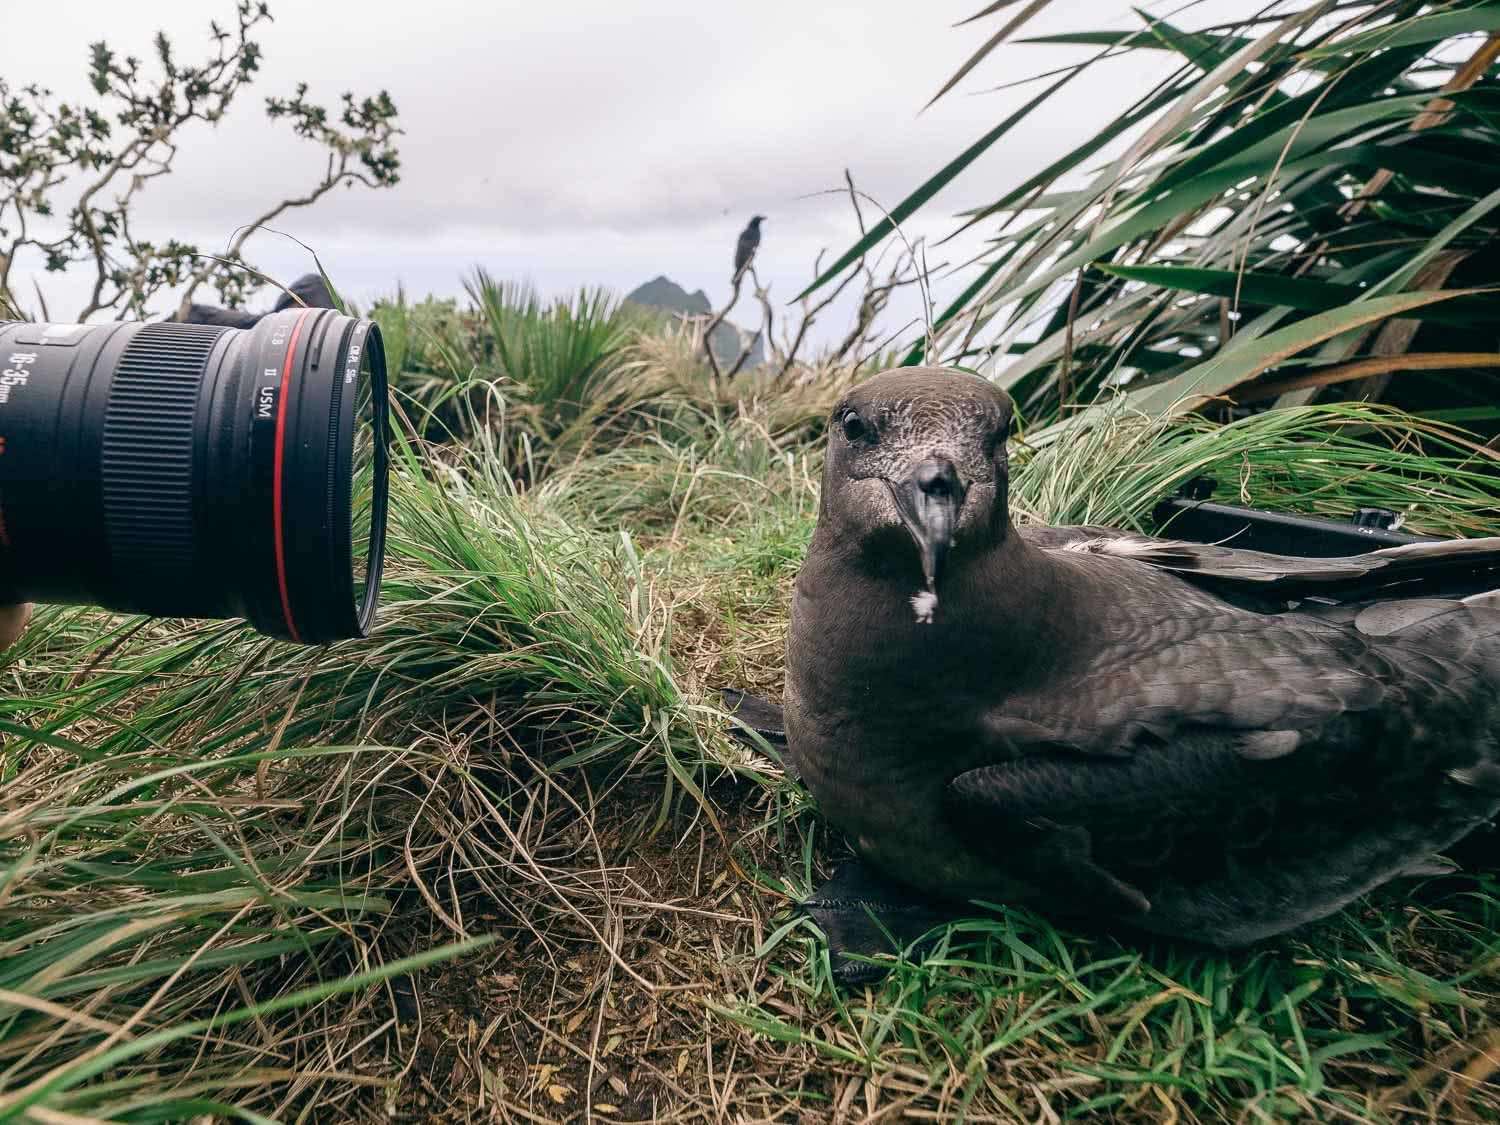 Lord Howe Island's Photography Hot Spots, Matt Horspool, Providence Petrel, bird, wildlife photography, grass, close up